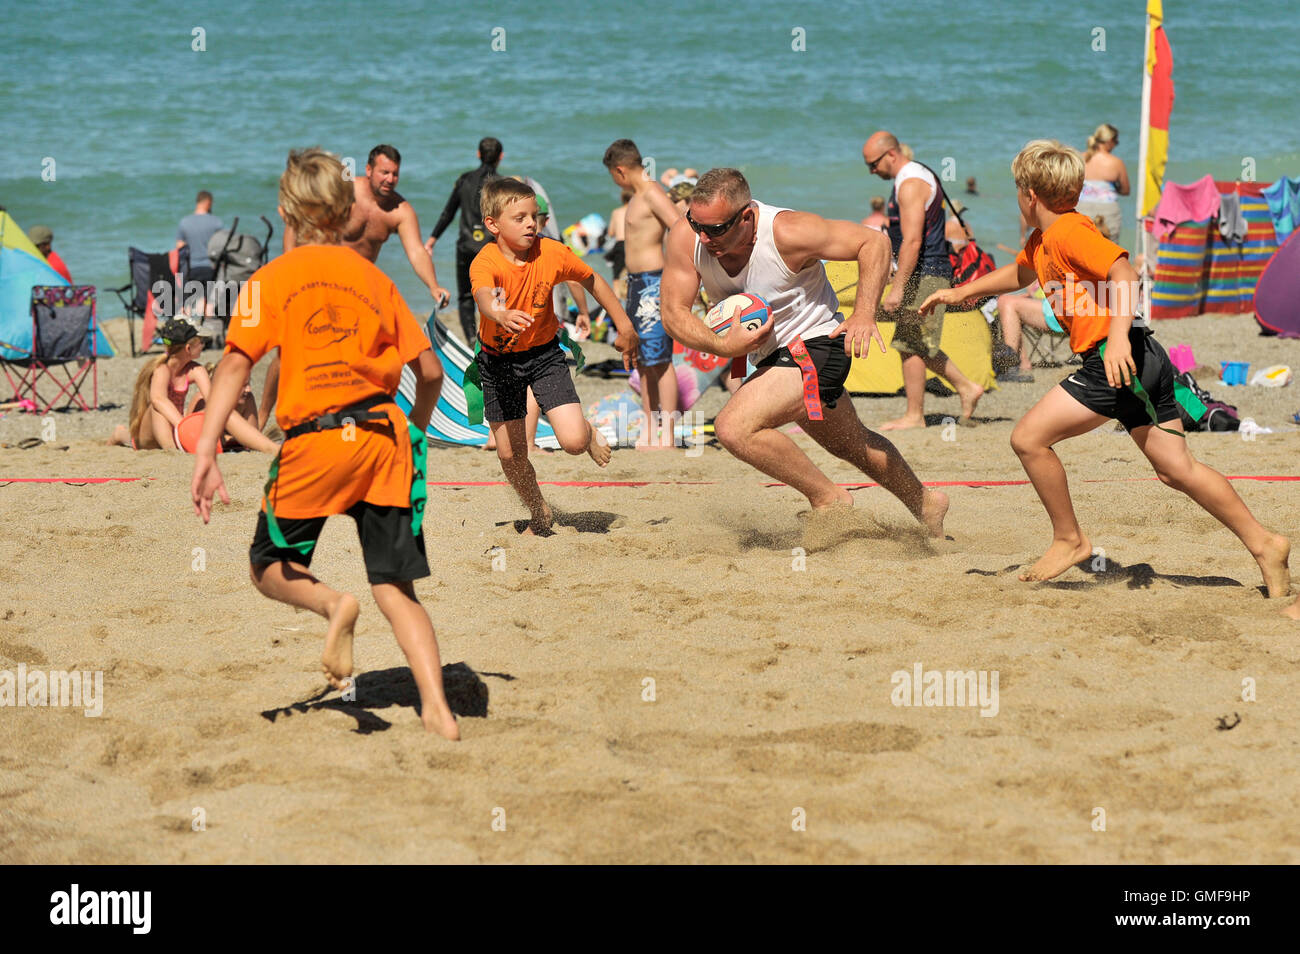 Newquay, UK. 26th Aug, 2016. Lusty Glaze, Newquay, Cornwall. 26th August, 2016. Three young players from a St Agnes - Stock Image